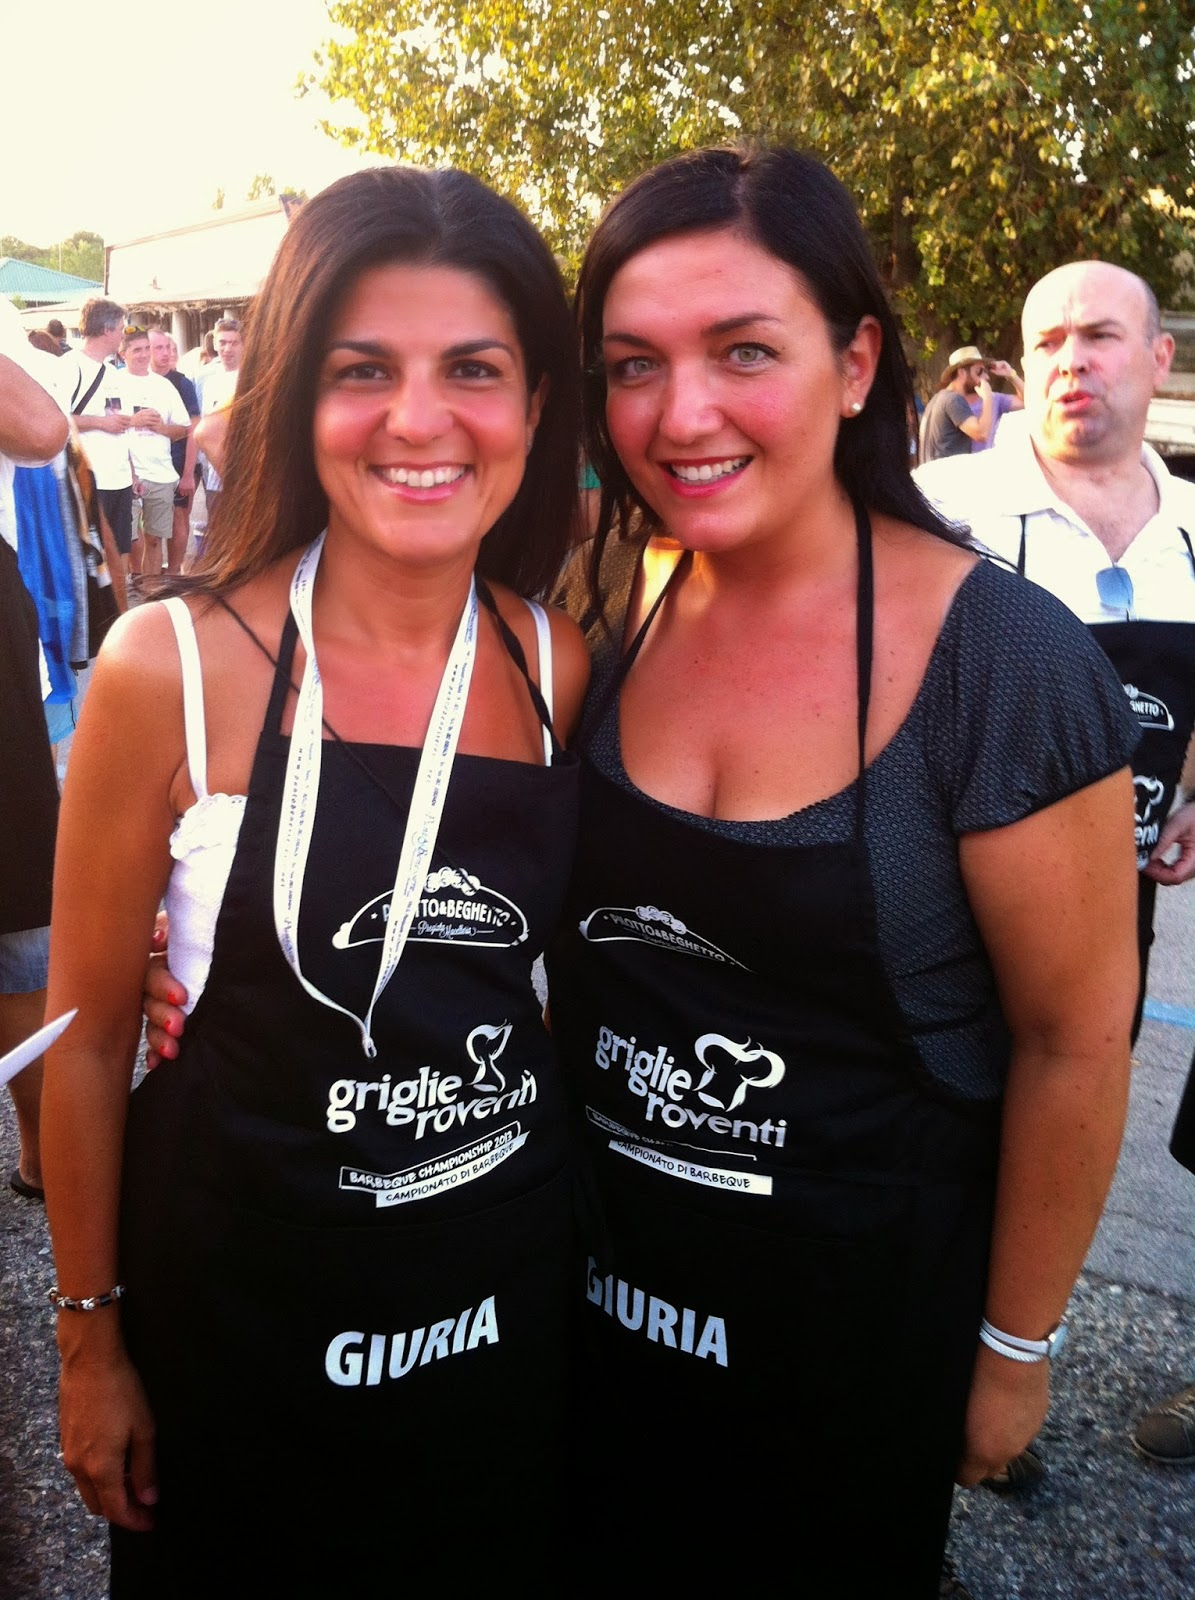 2013_party_vista_mare_2014_sea_blog_blogger_travel_food_angela_maci